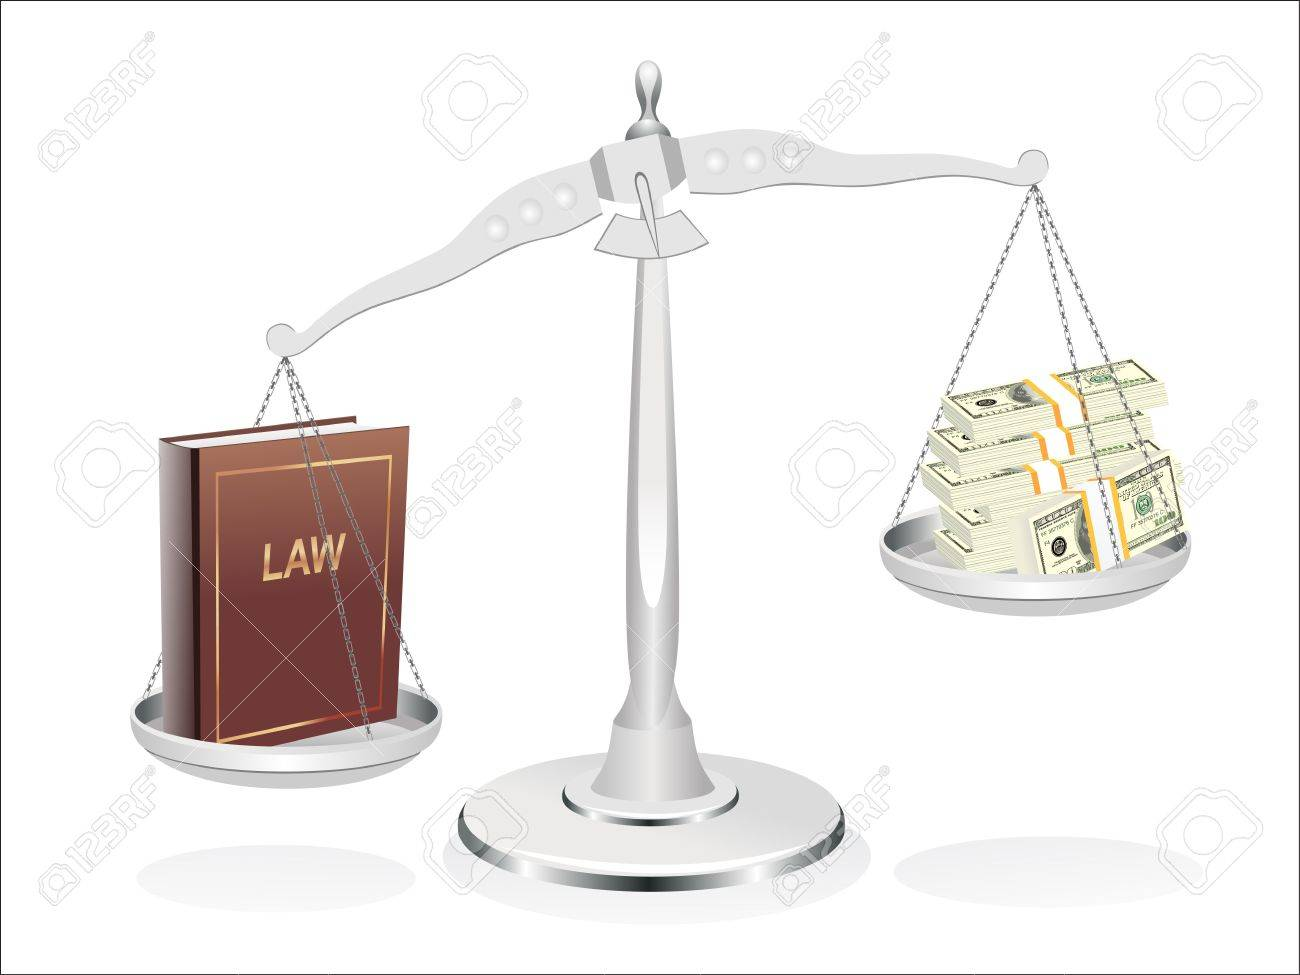 Balance between law and money illustration design over a white background Stock Vector - 19394645